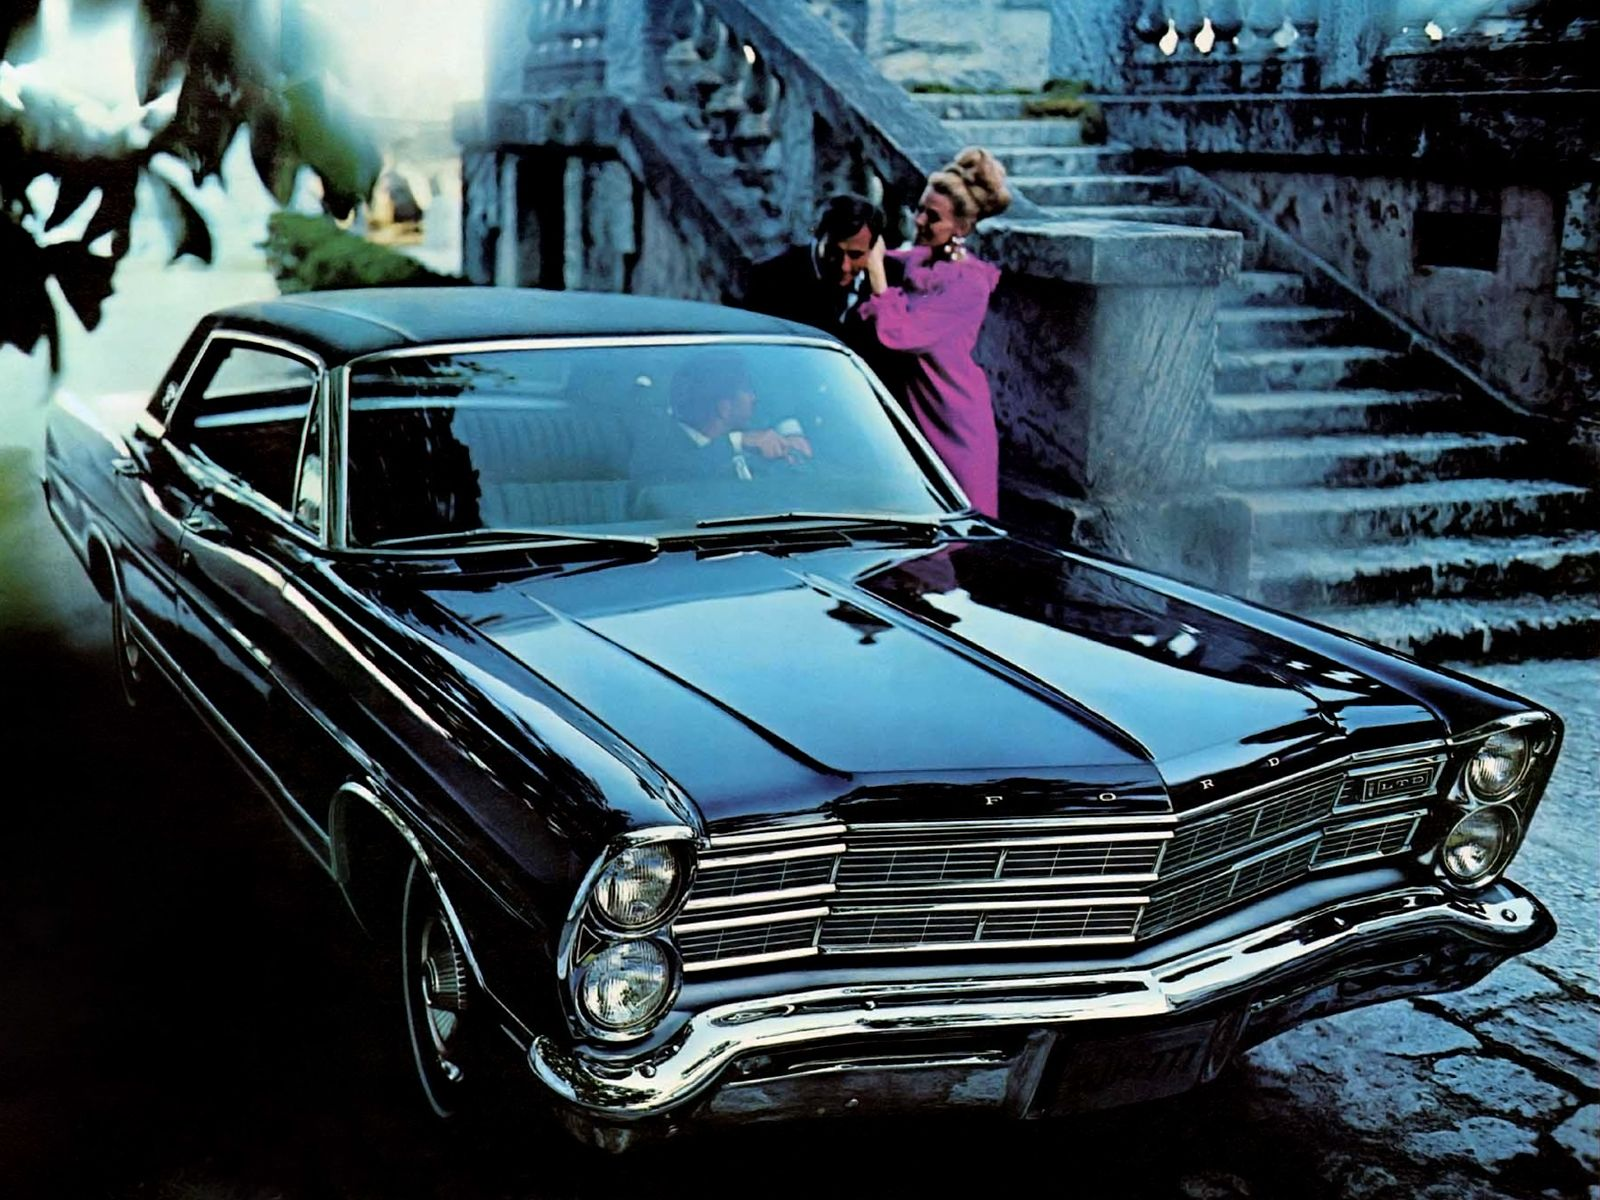 1967 Ford LTD. 1967 was the year that the LTD became a separate model & 1967 Ford LTD. 1967 was the year that the LTD became a separate ... markmcfarlin.com